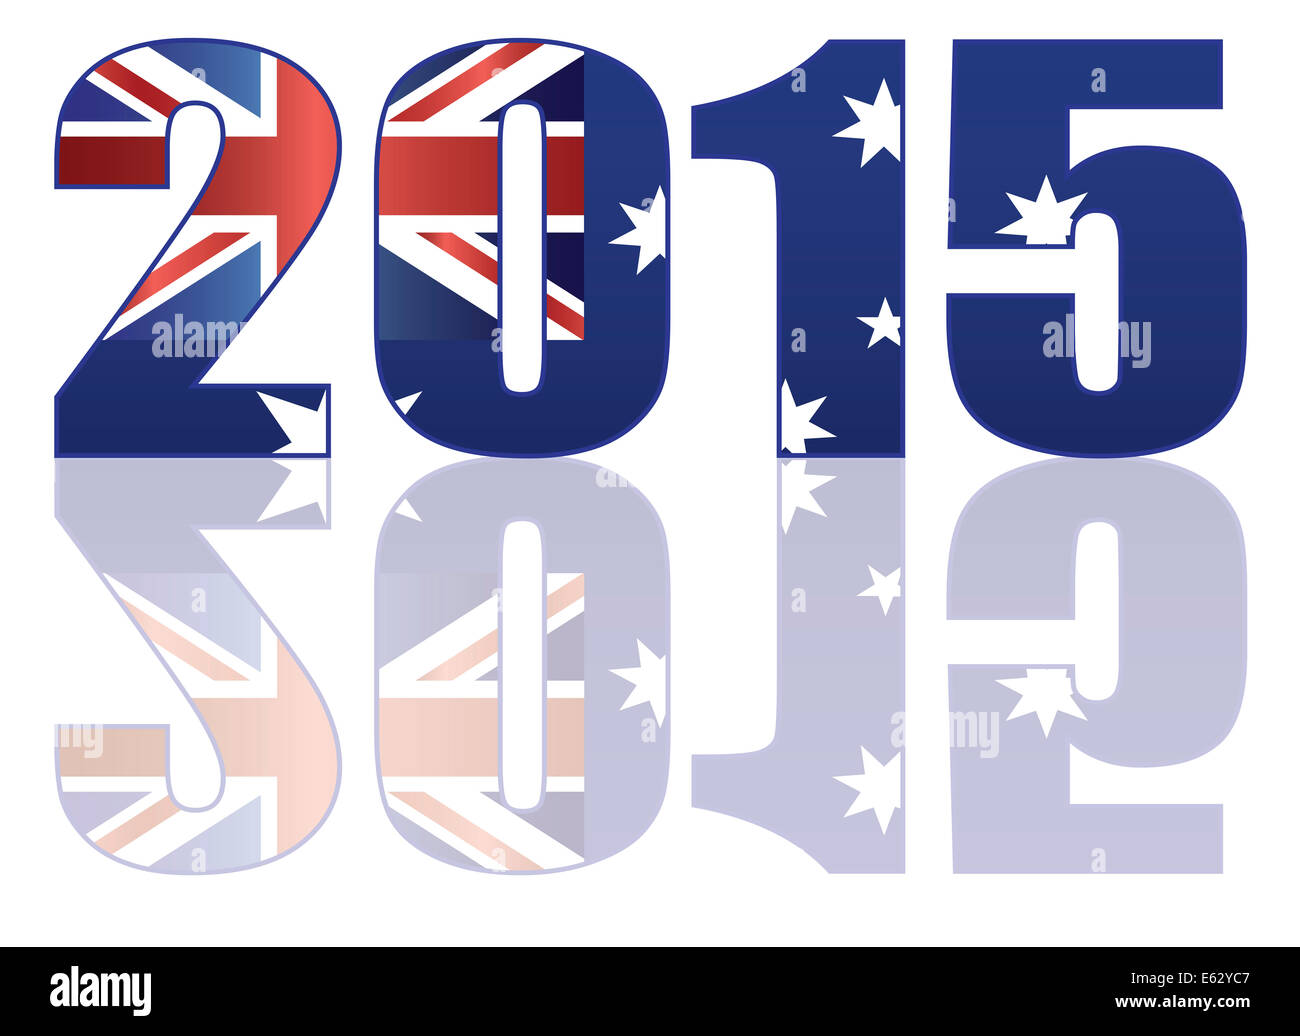 Happy New Year 2015 Numerals SIlhouette Outline with Australia Flag Illustration - Stock Image